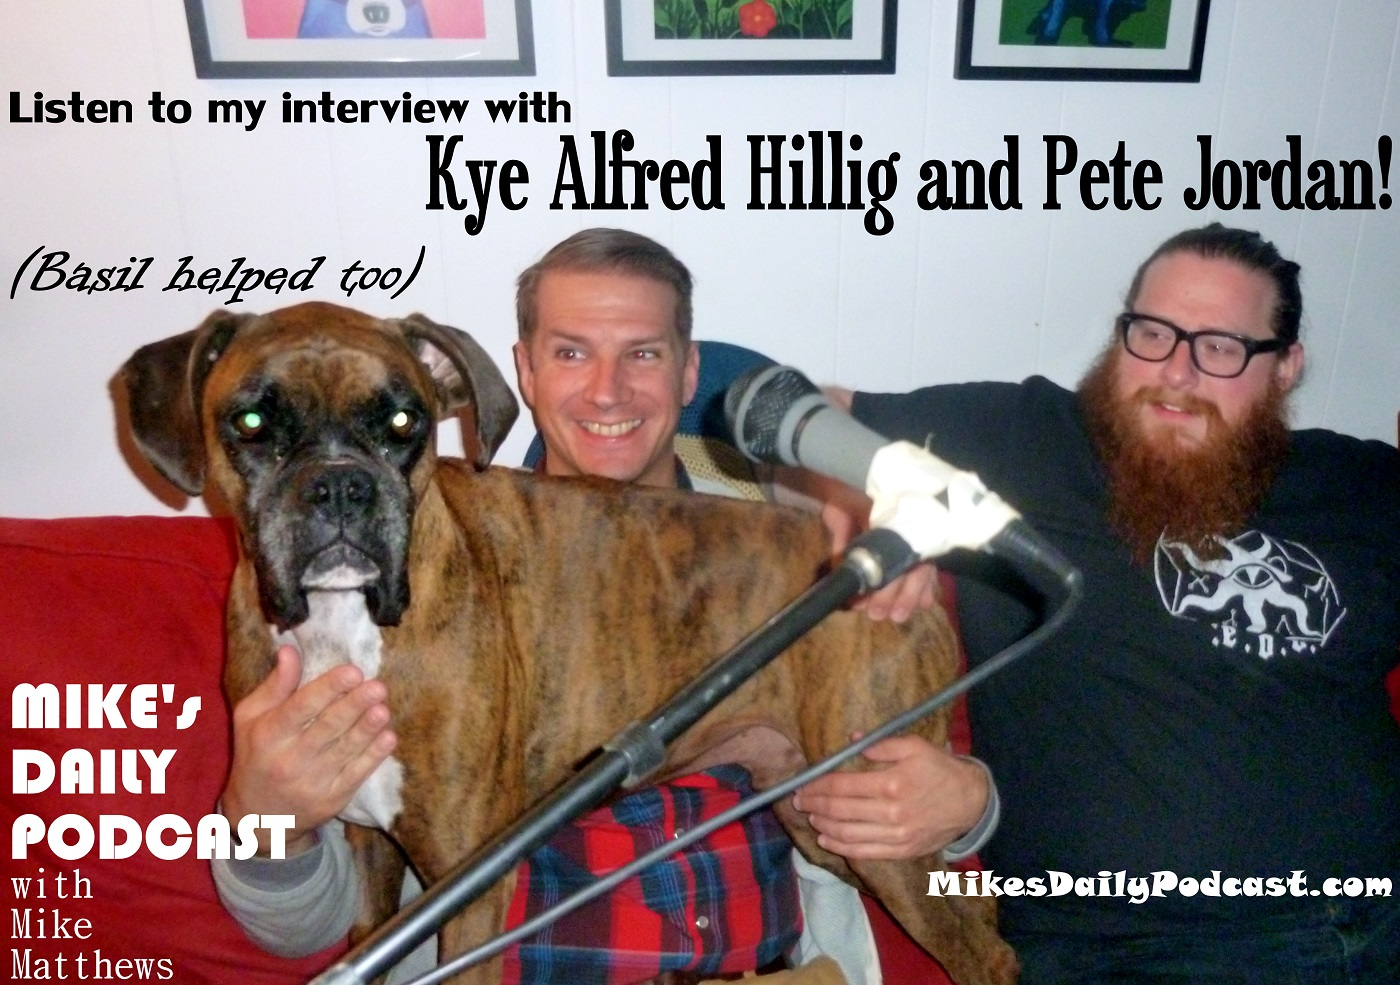 MIKEs DAILY PODCAST 3-21-15 Kye Alfred Hillig Pete Jordan Cloud Person boxer